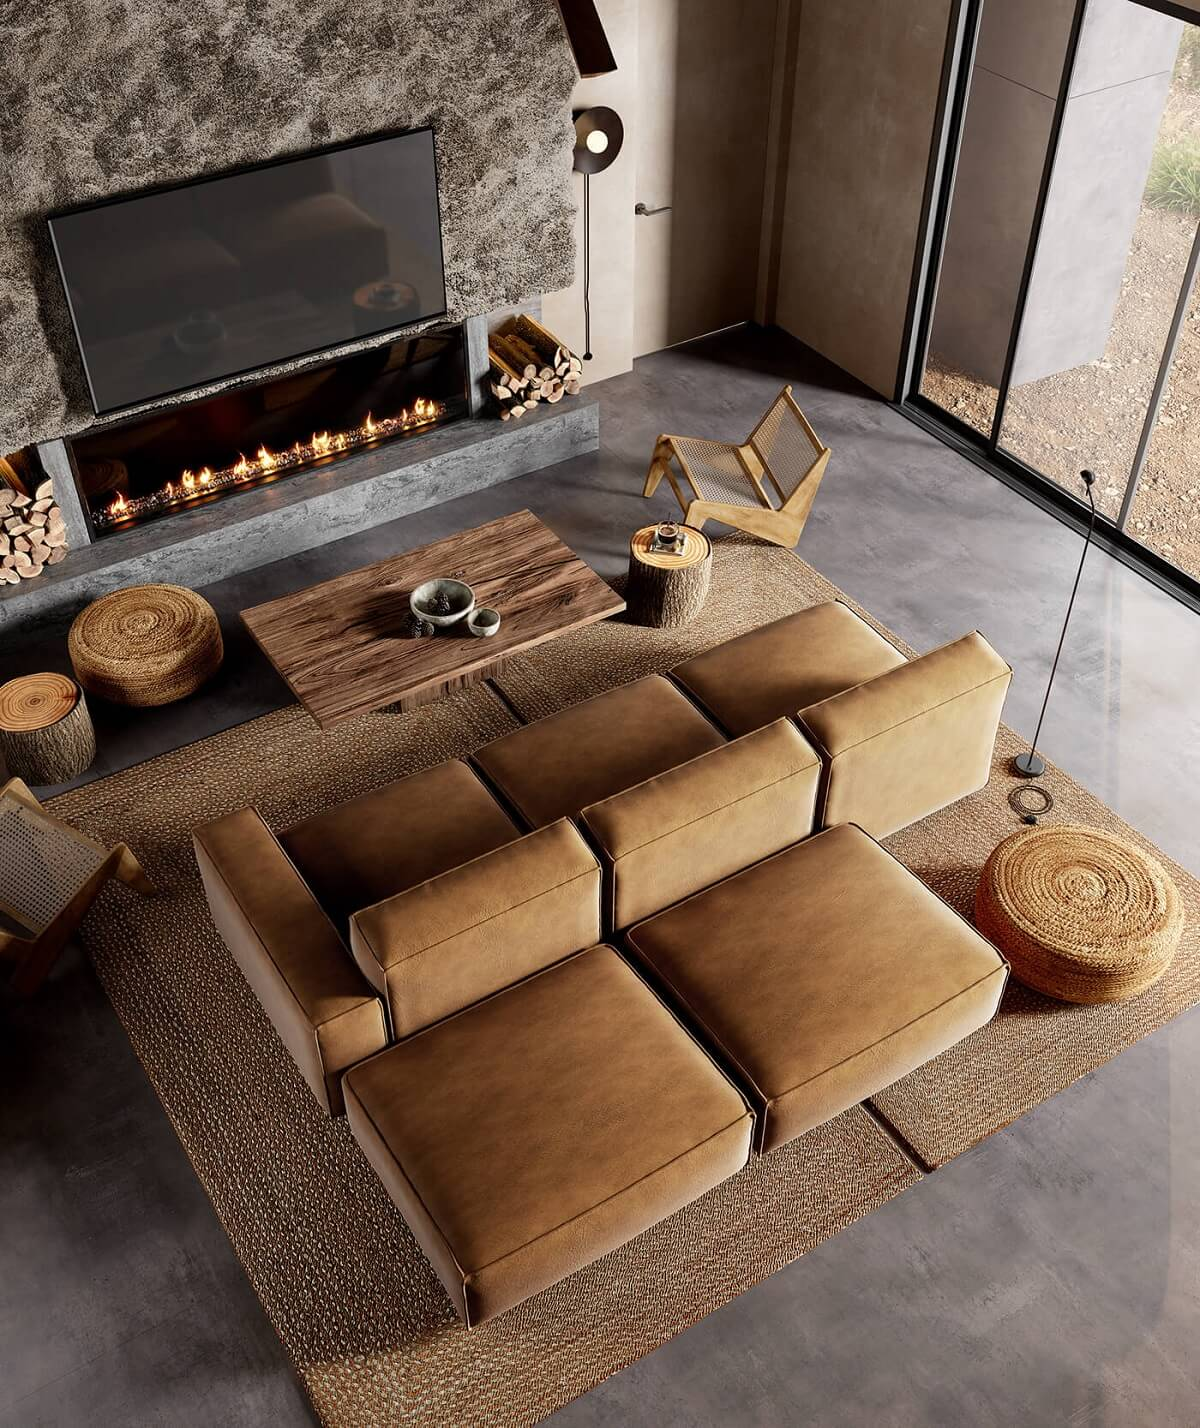 A Modern Rustic Home in Joshua Tree National Park